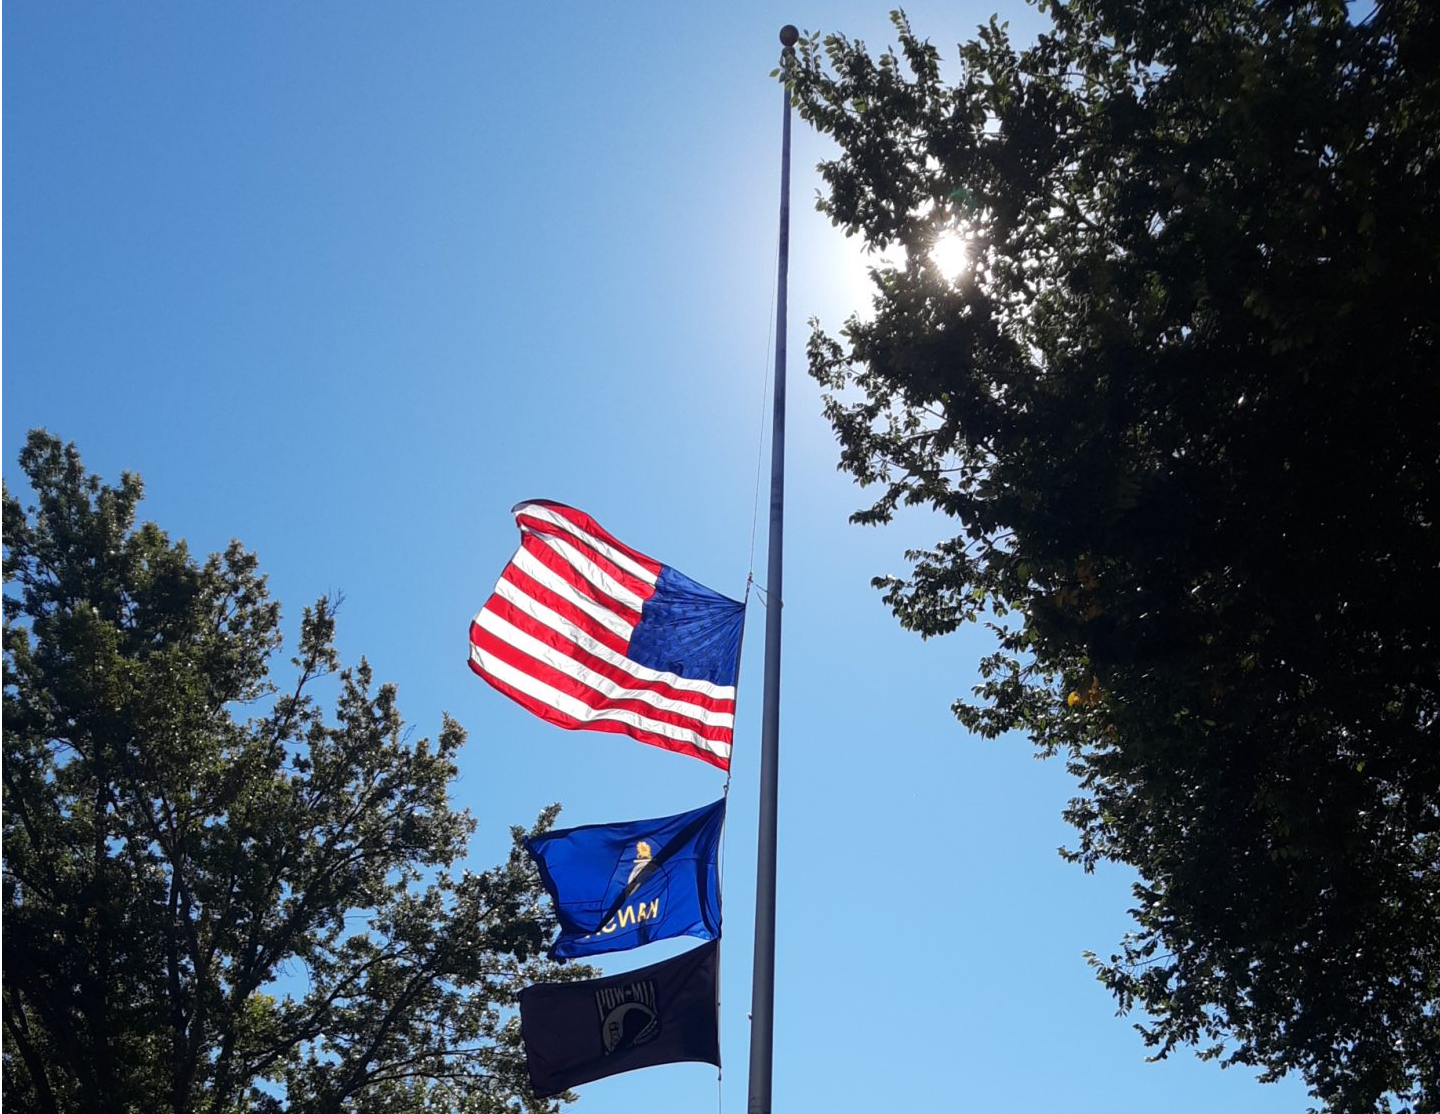 Kansas Gov. Laura Kelly directed U.S. flags be flown at half-staff Thursday in honor of Leavenworth County Deputy Corporal Daniel Abramovitz. who was killed Oct. 30 in a traffic accident. (Tim Carpenter/Kansas Reflector)